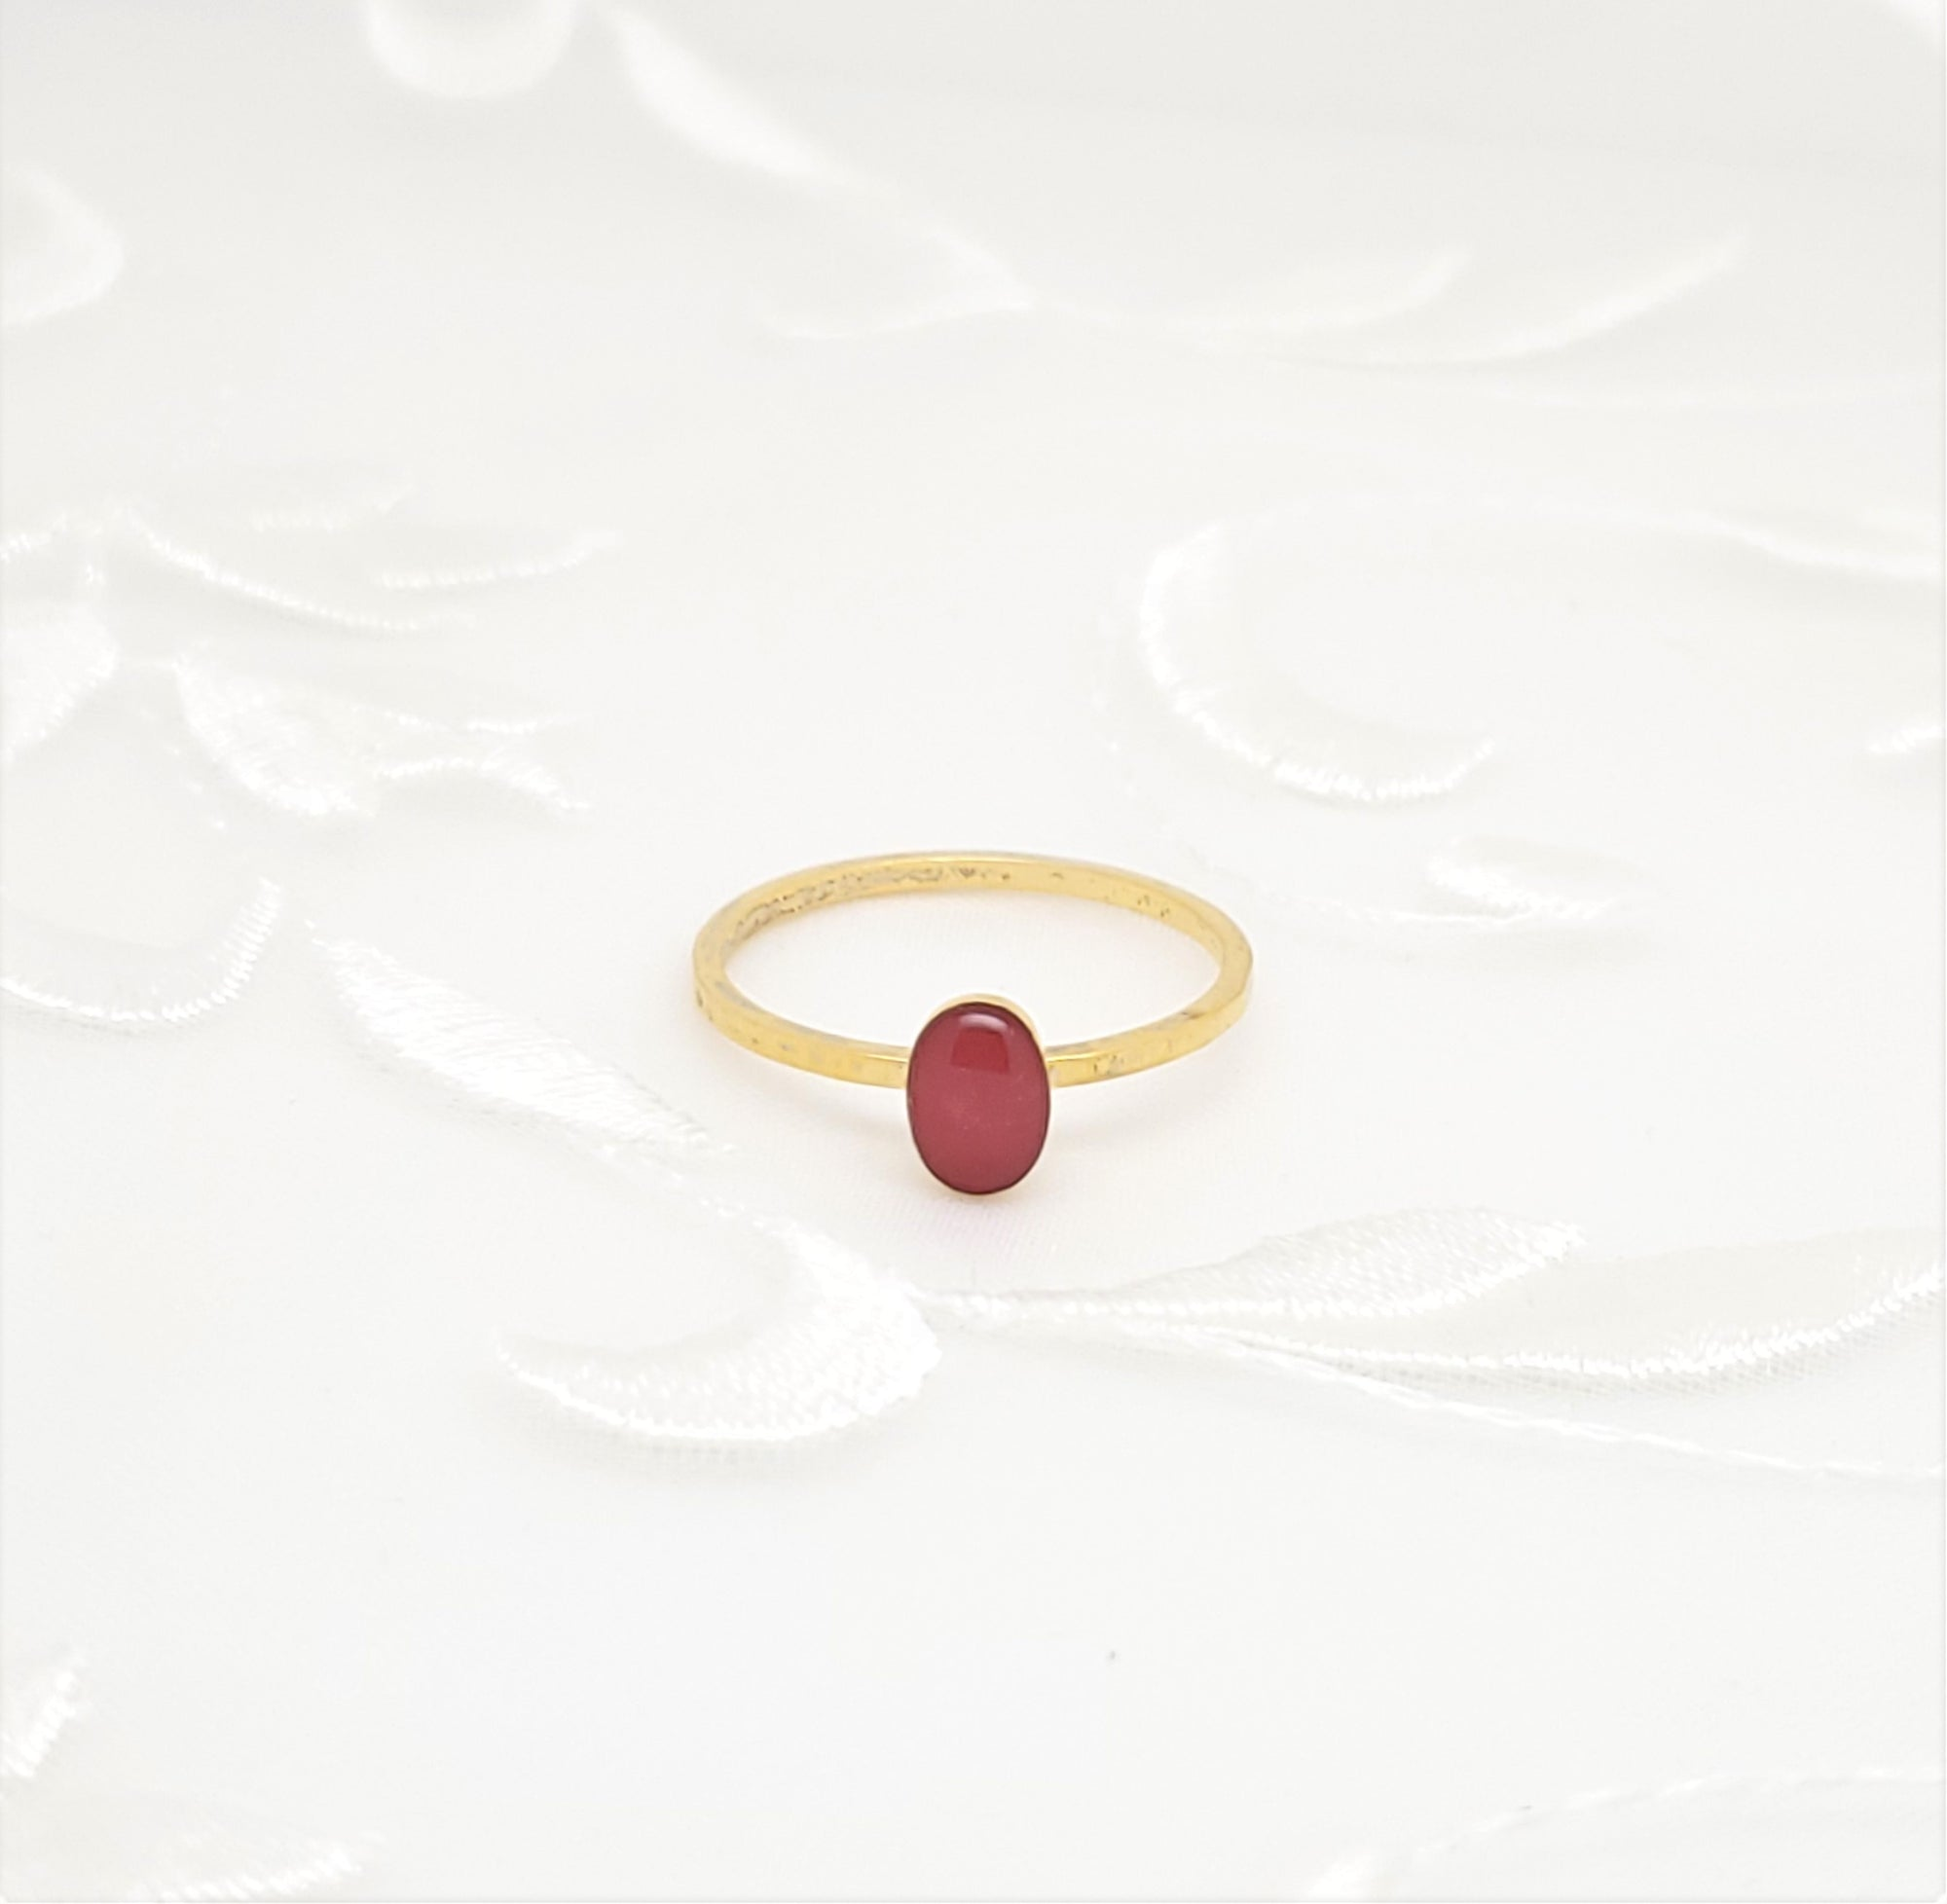 Antique Gold Oval Ring with Pink Resin